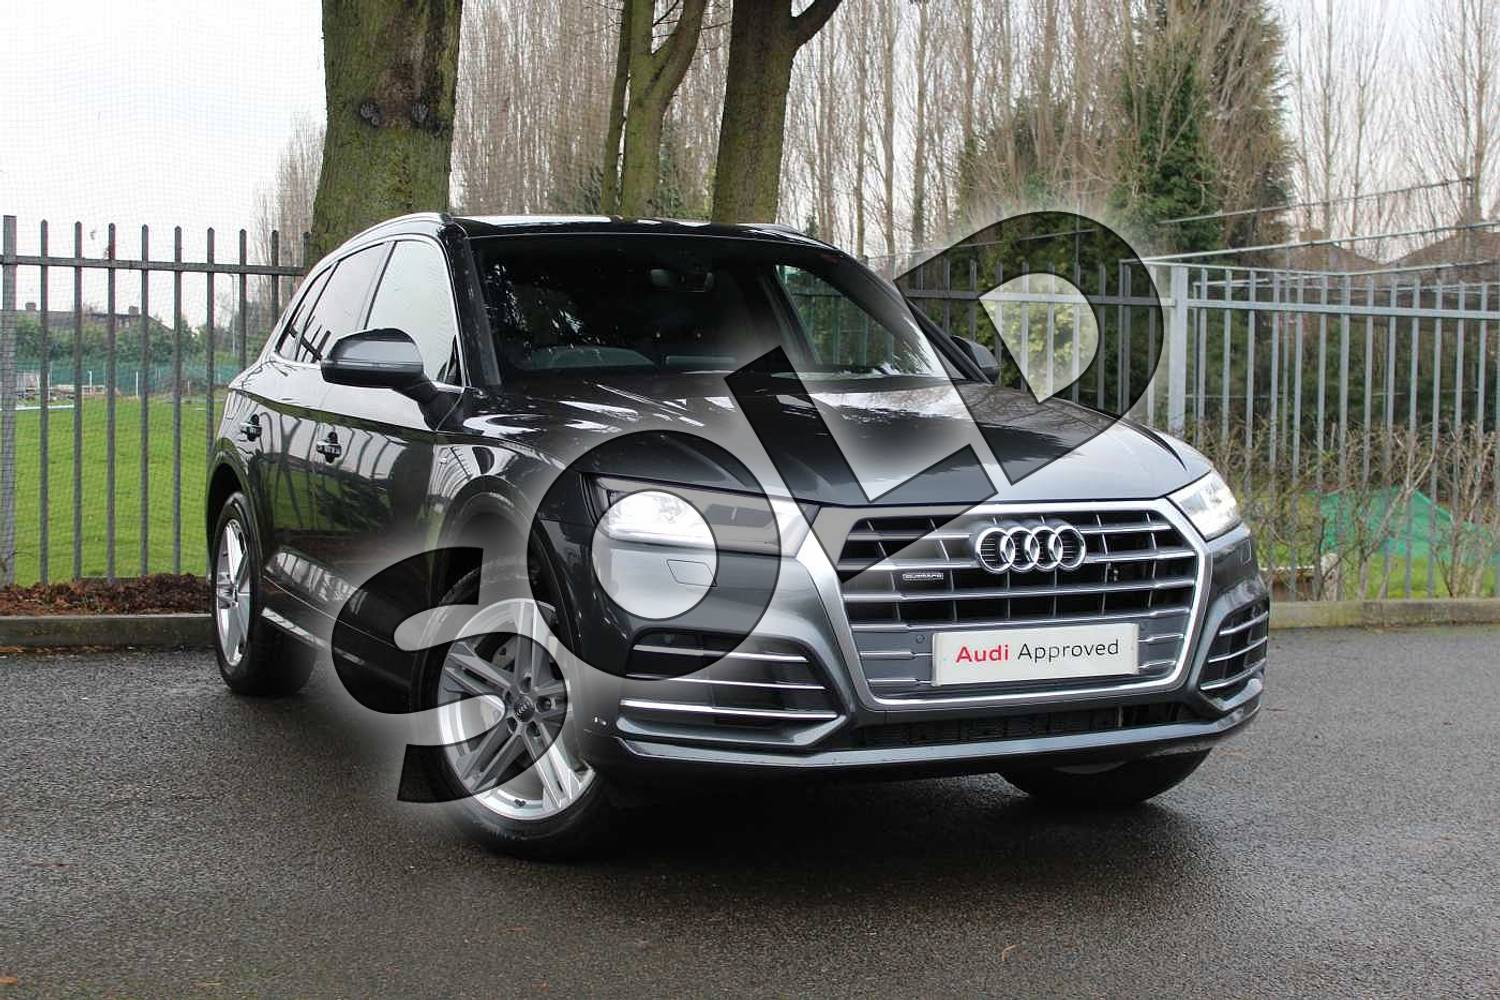 2018 Audi Q5 Diesel Estate Diesel 40 TDI Quattro S Line 5dr S Tronic in Daytona Grey Pearlescent at Coventry Audi